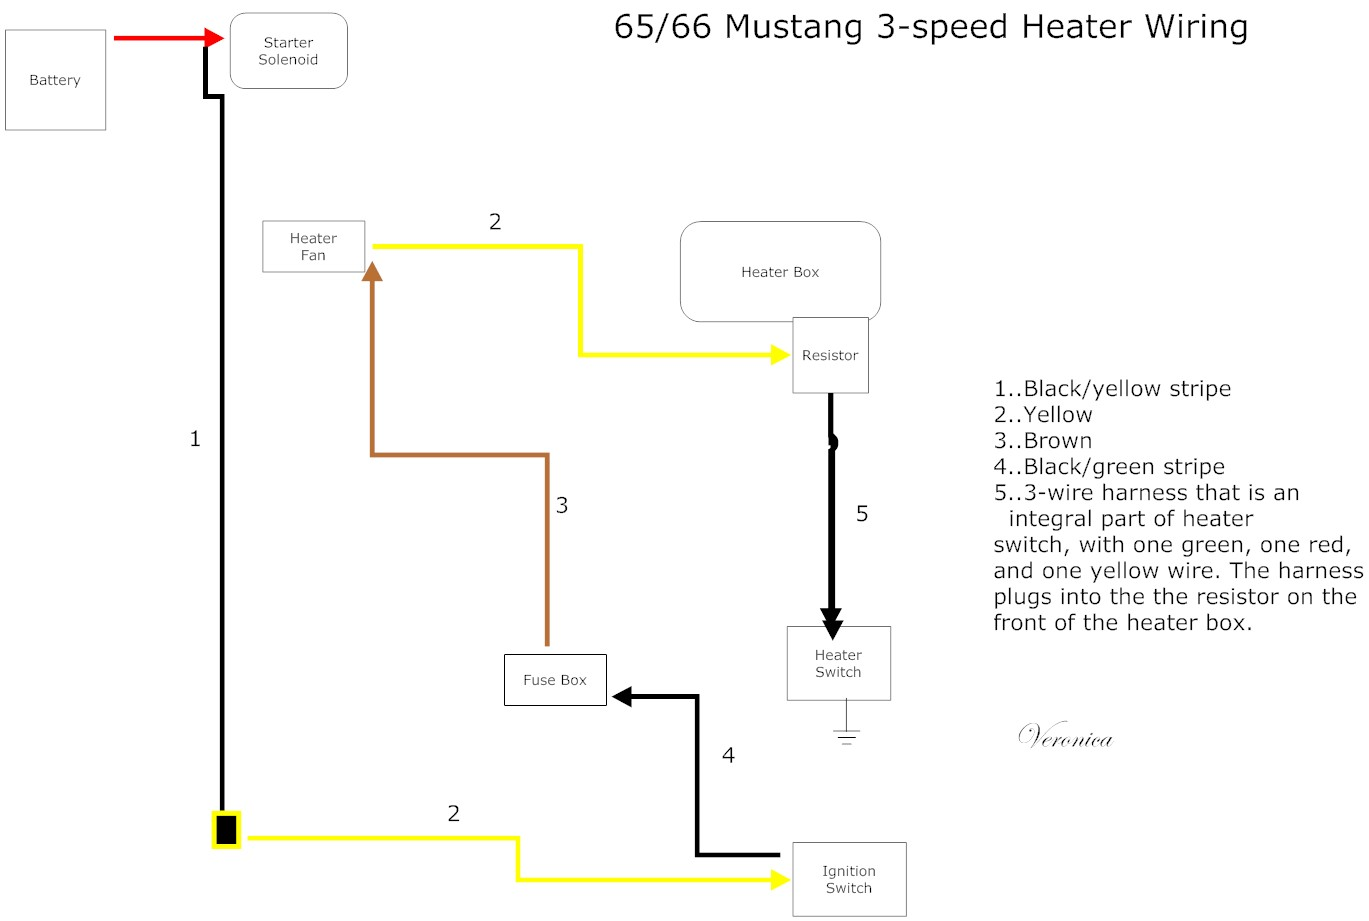 1968 Mustang Headlight Wiring Diagrams The Care And Feeding Of Ponies Heater Blower Motor Blogspot Com Dash